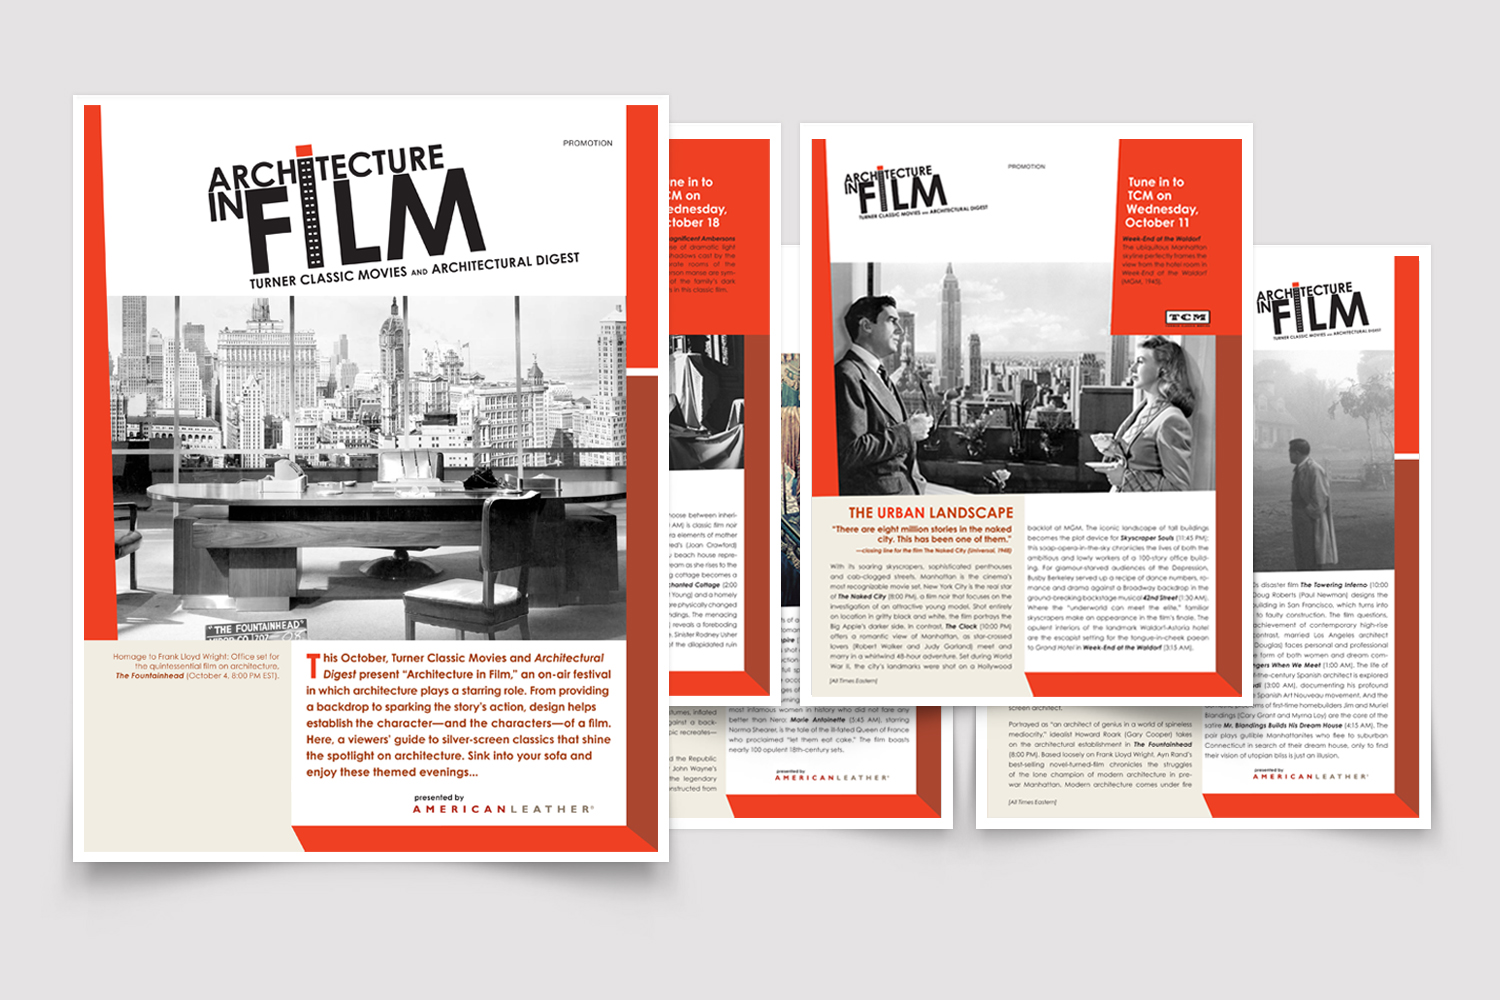 tcm-architecture-in-film-section.jpg